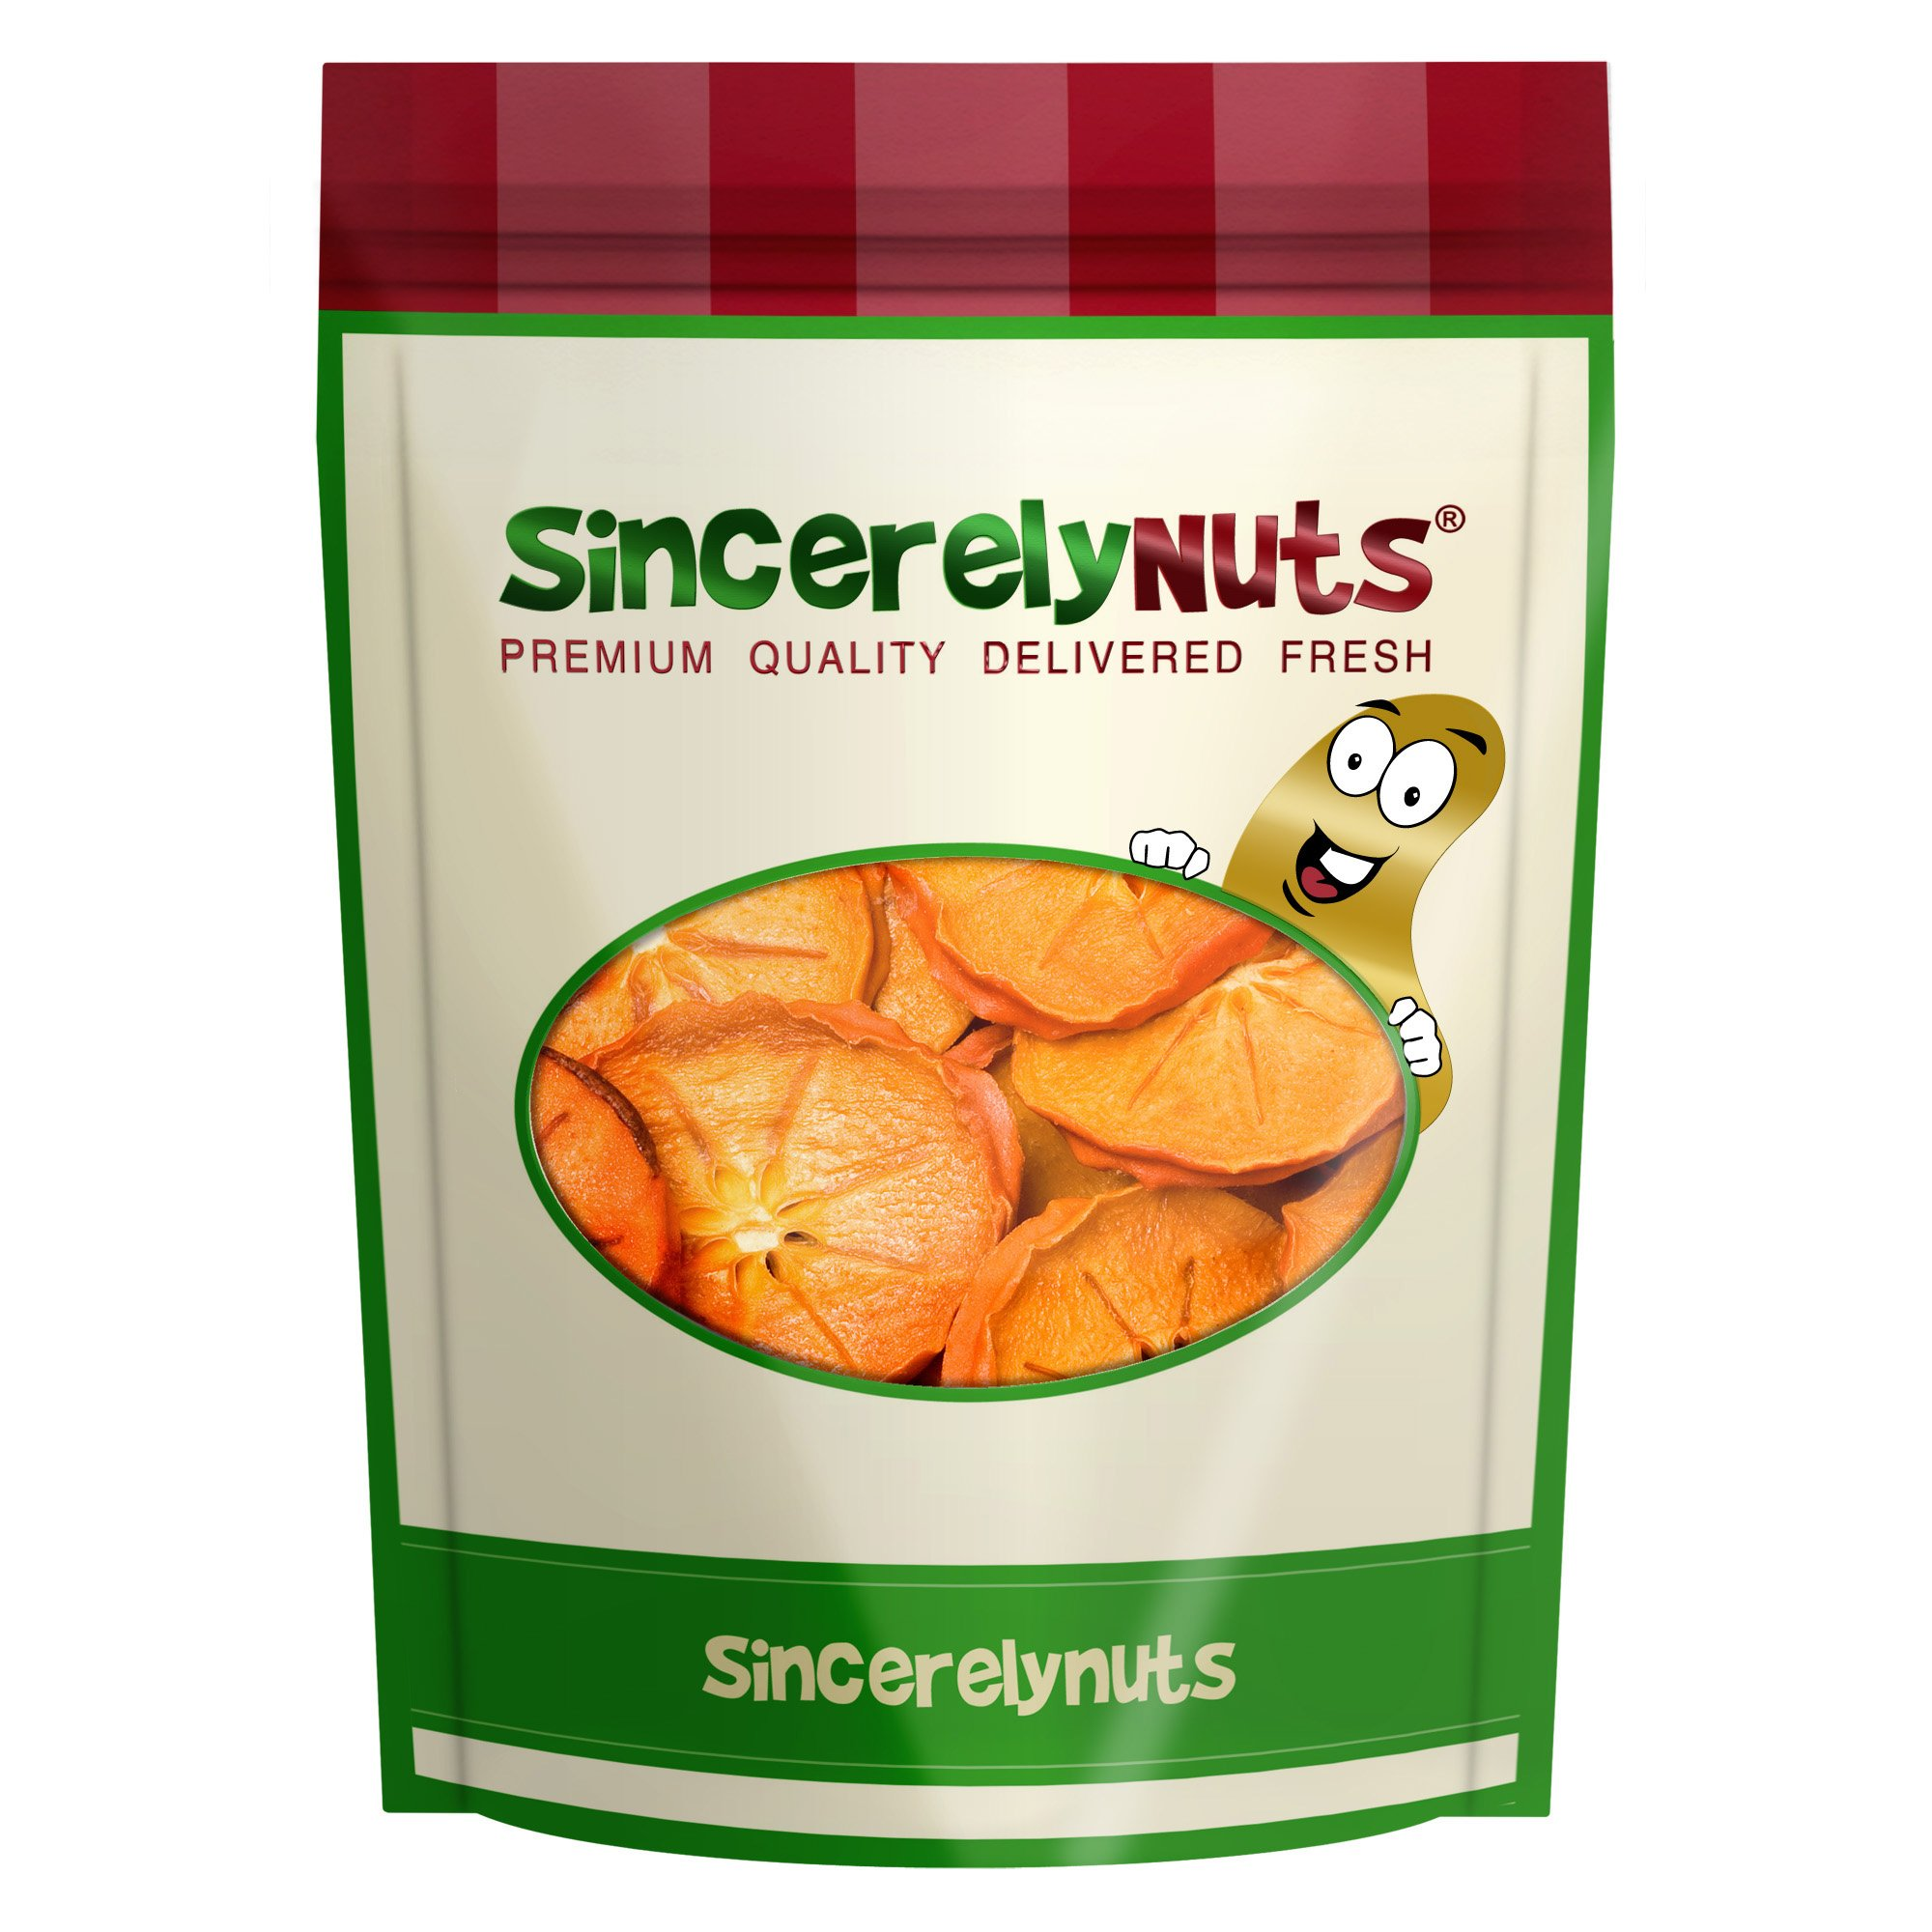 Sincerely Nuts Dried Persimmon Slices - One Lb. Bag - Heavenly Taste - Outstanding Texture & Color - Bursting with Nutrients